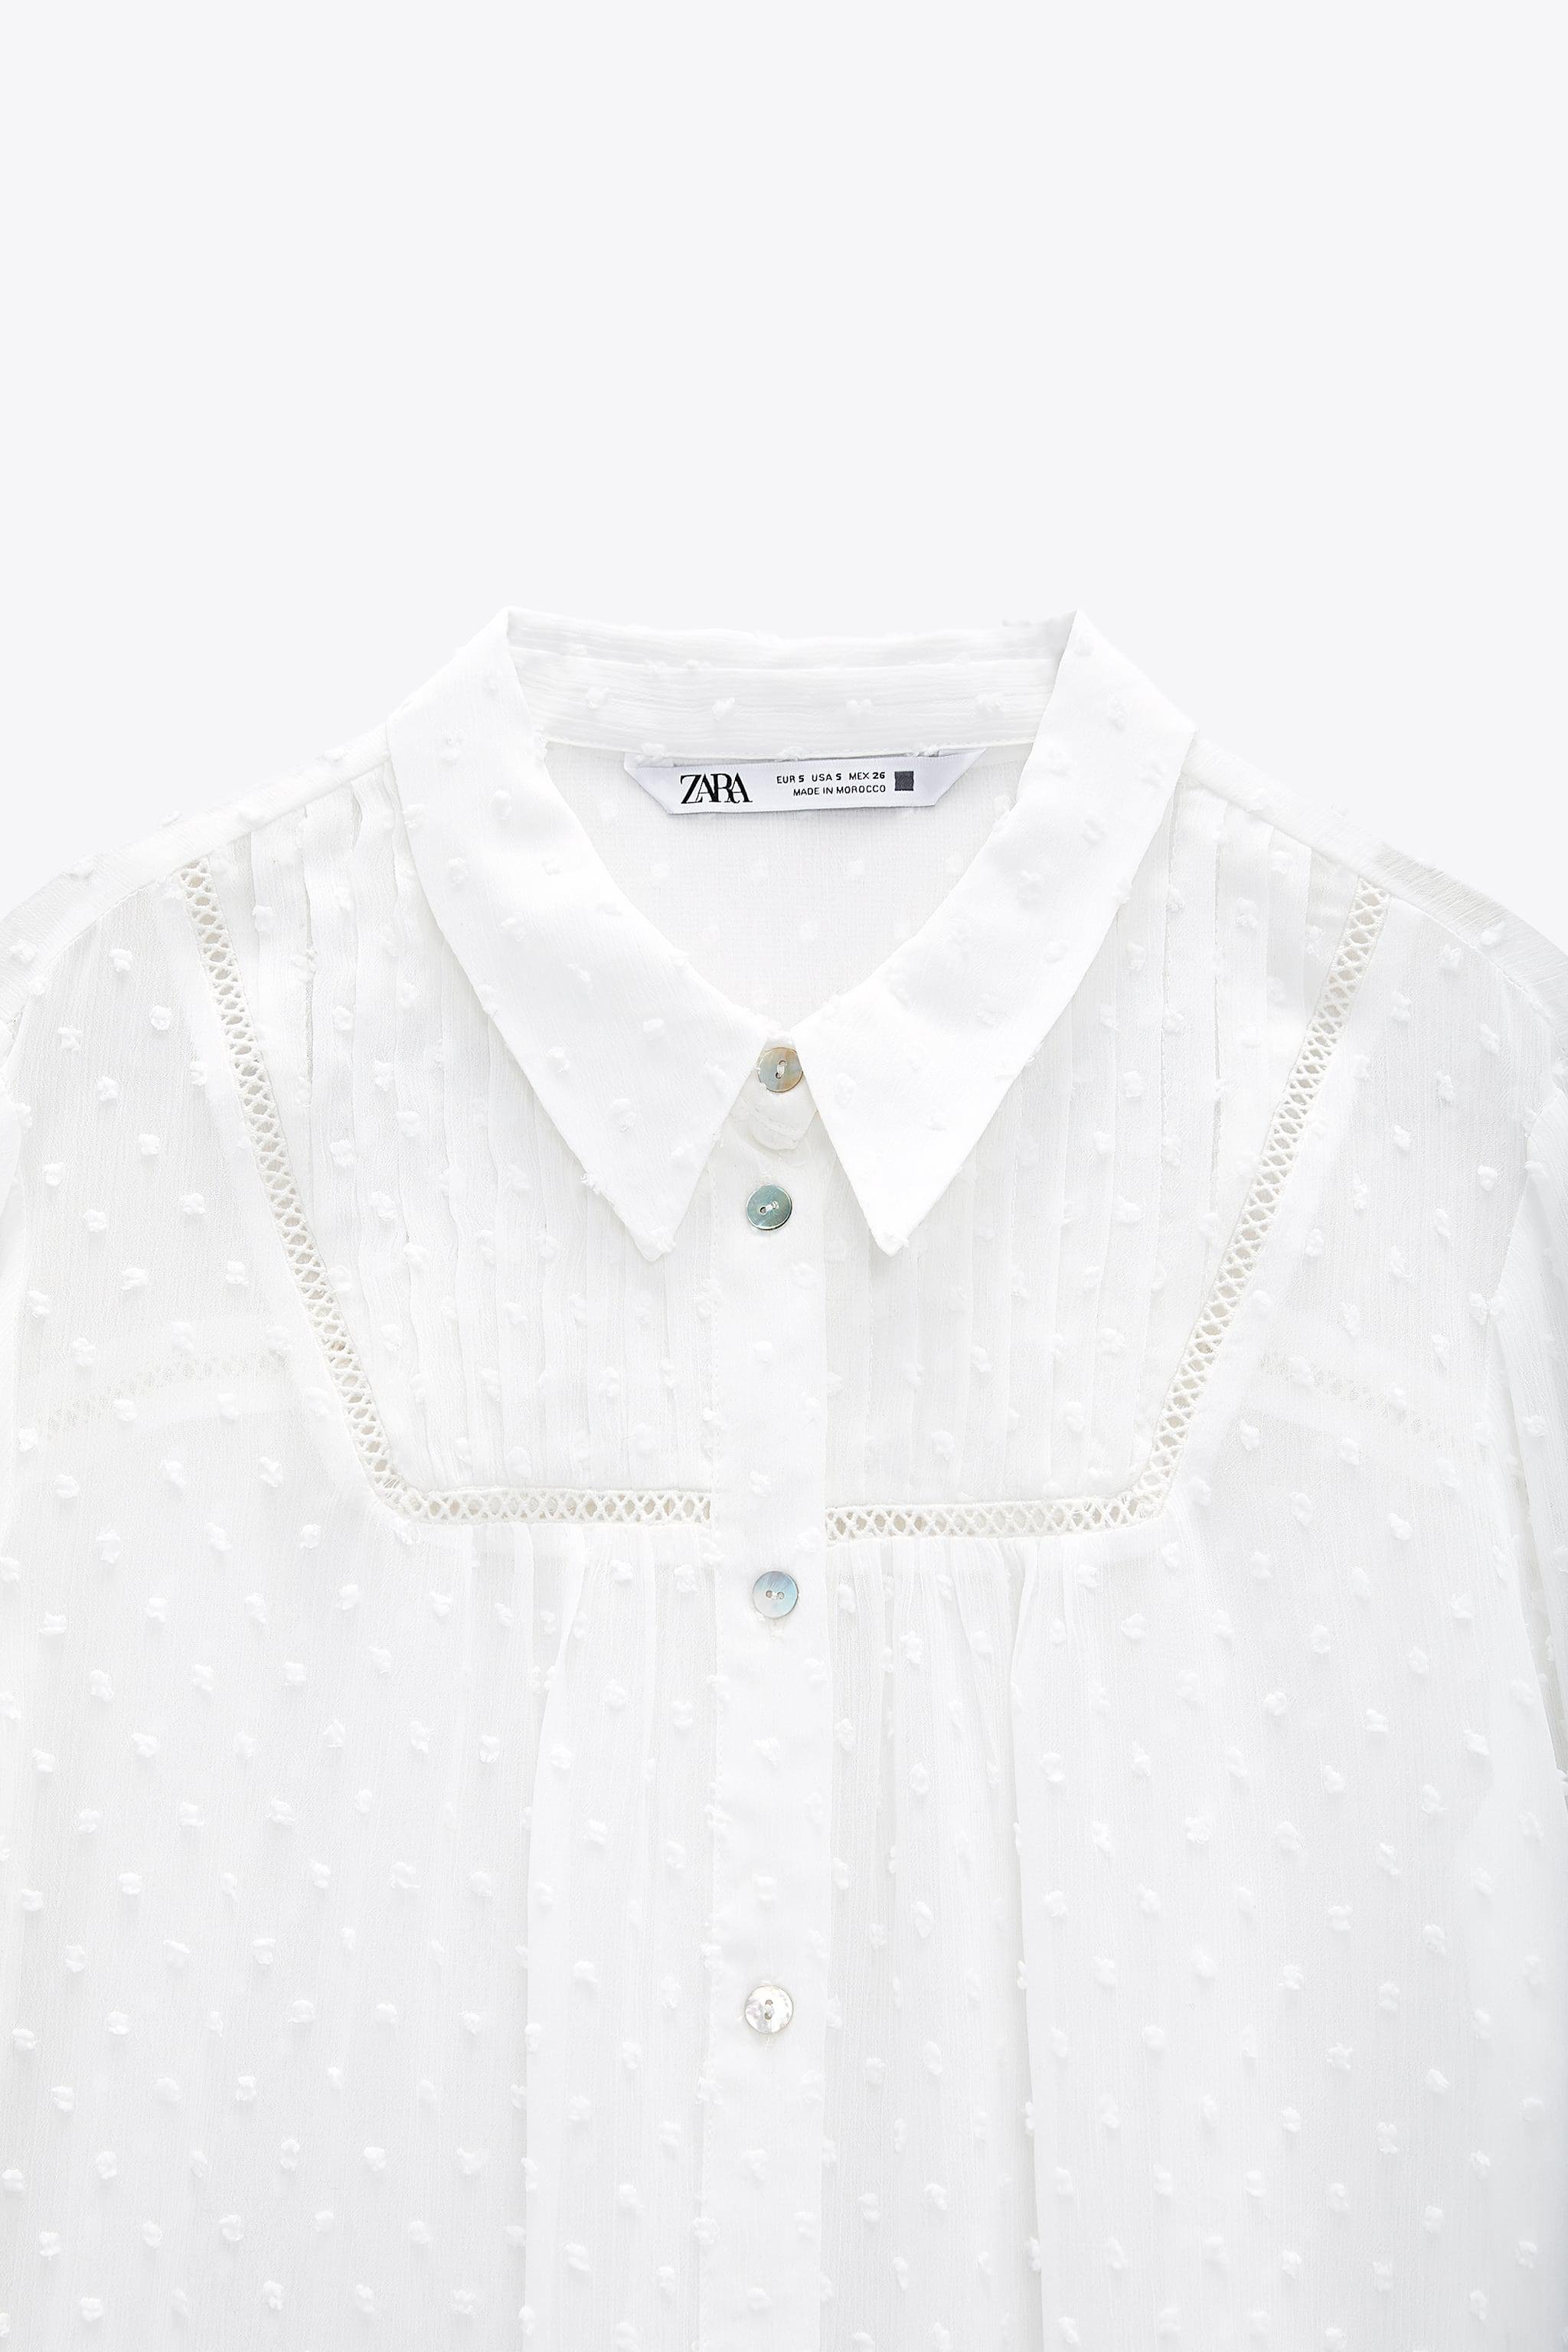 DOTTED MESH LACE INSERT SHIRT 6